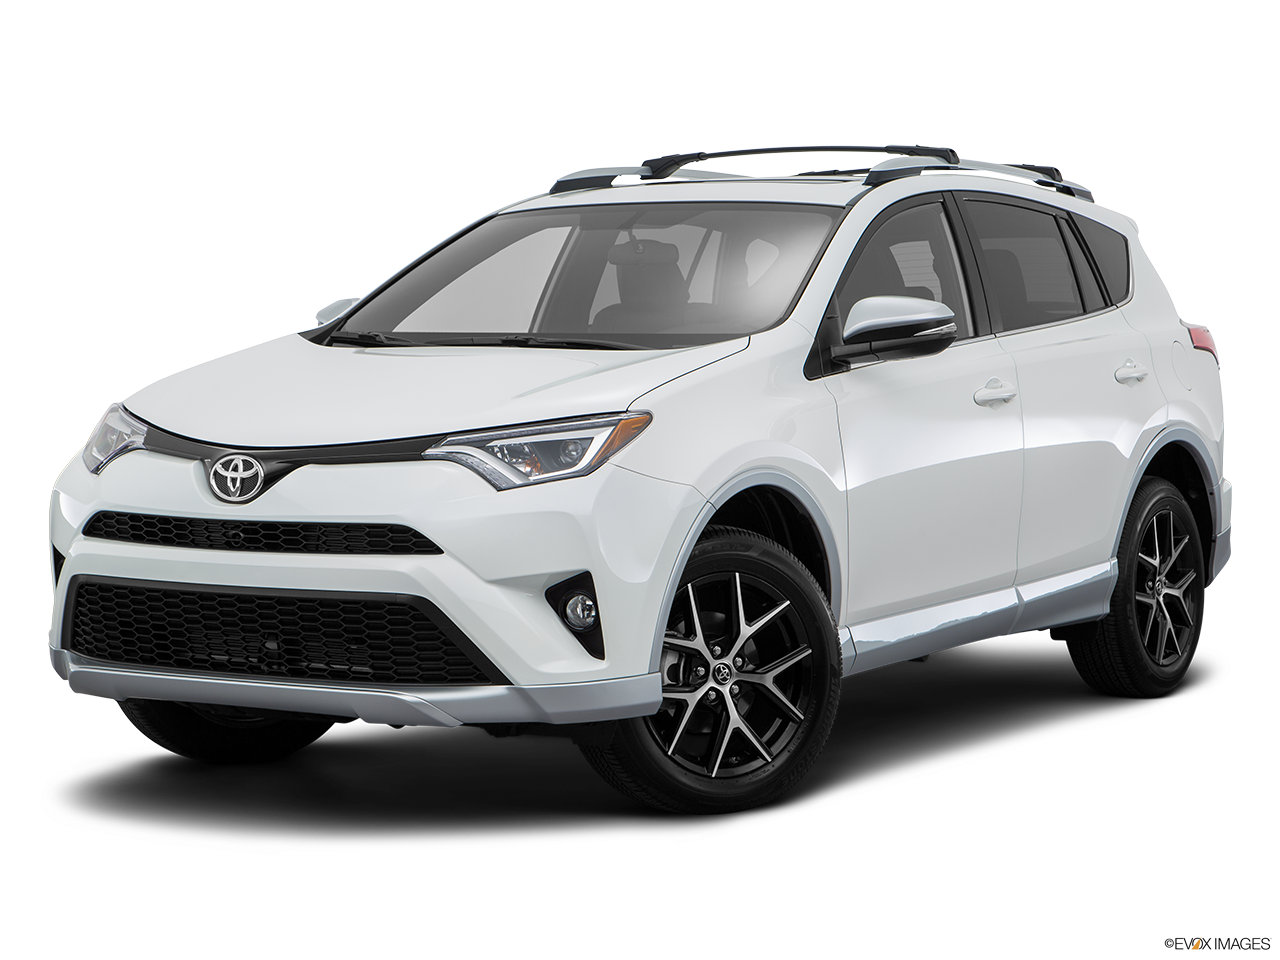 toyota rav4 png transparent toyota rav4 png images pluspng. Black Bedroom Furniture Sets. Home Design Ideas